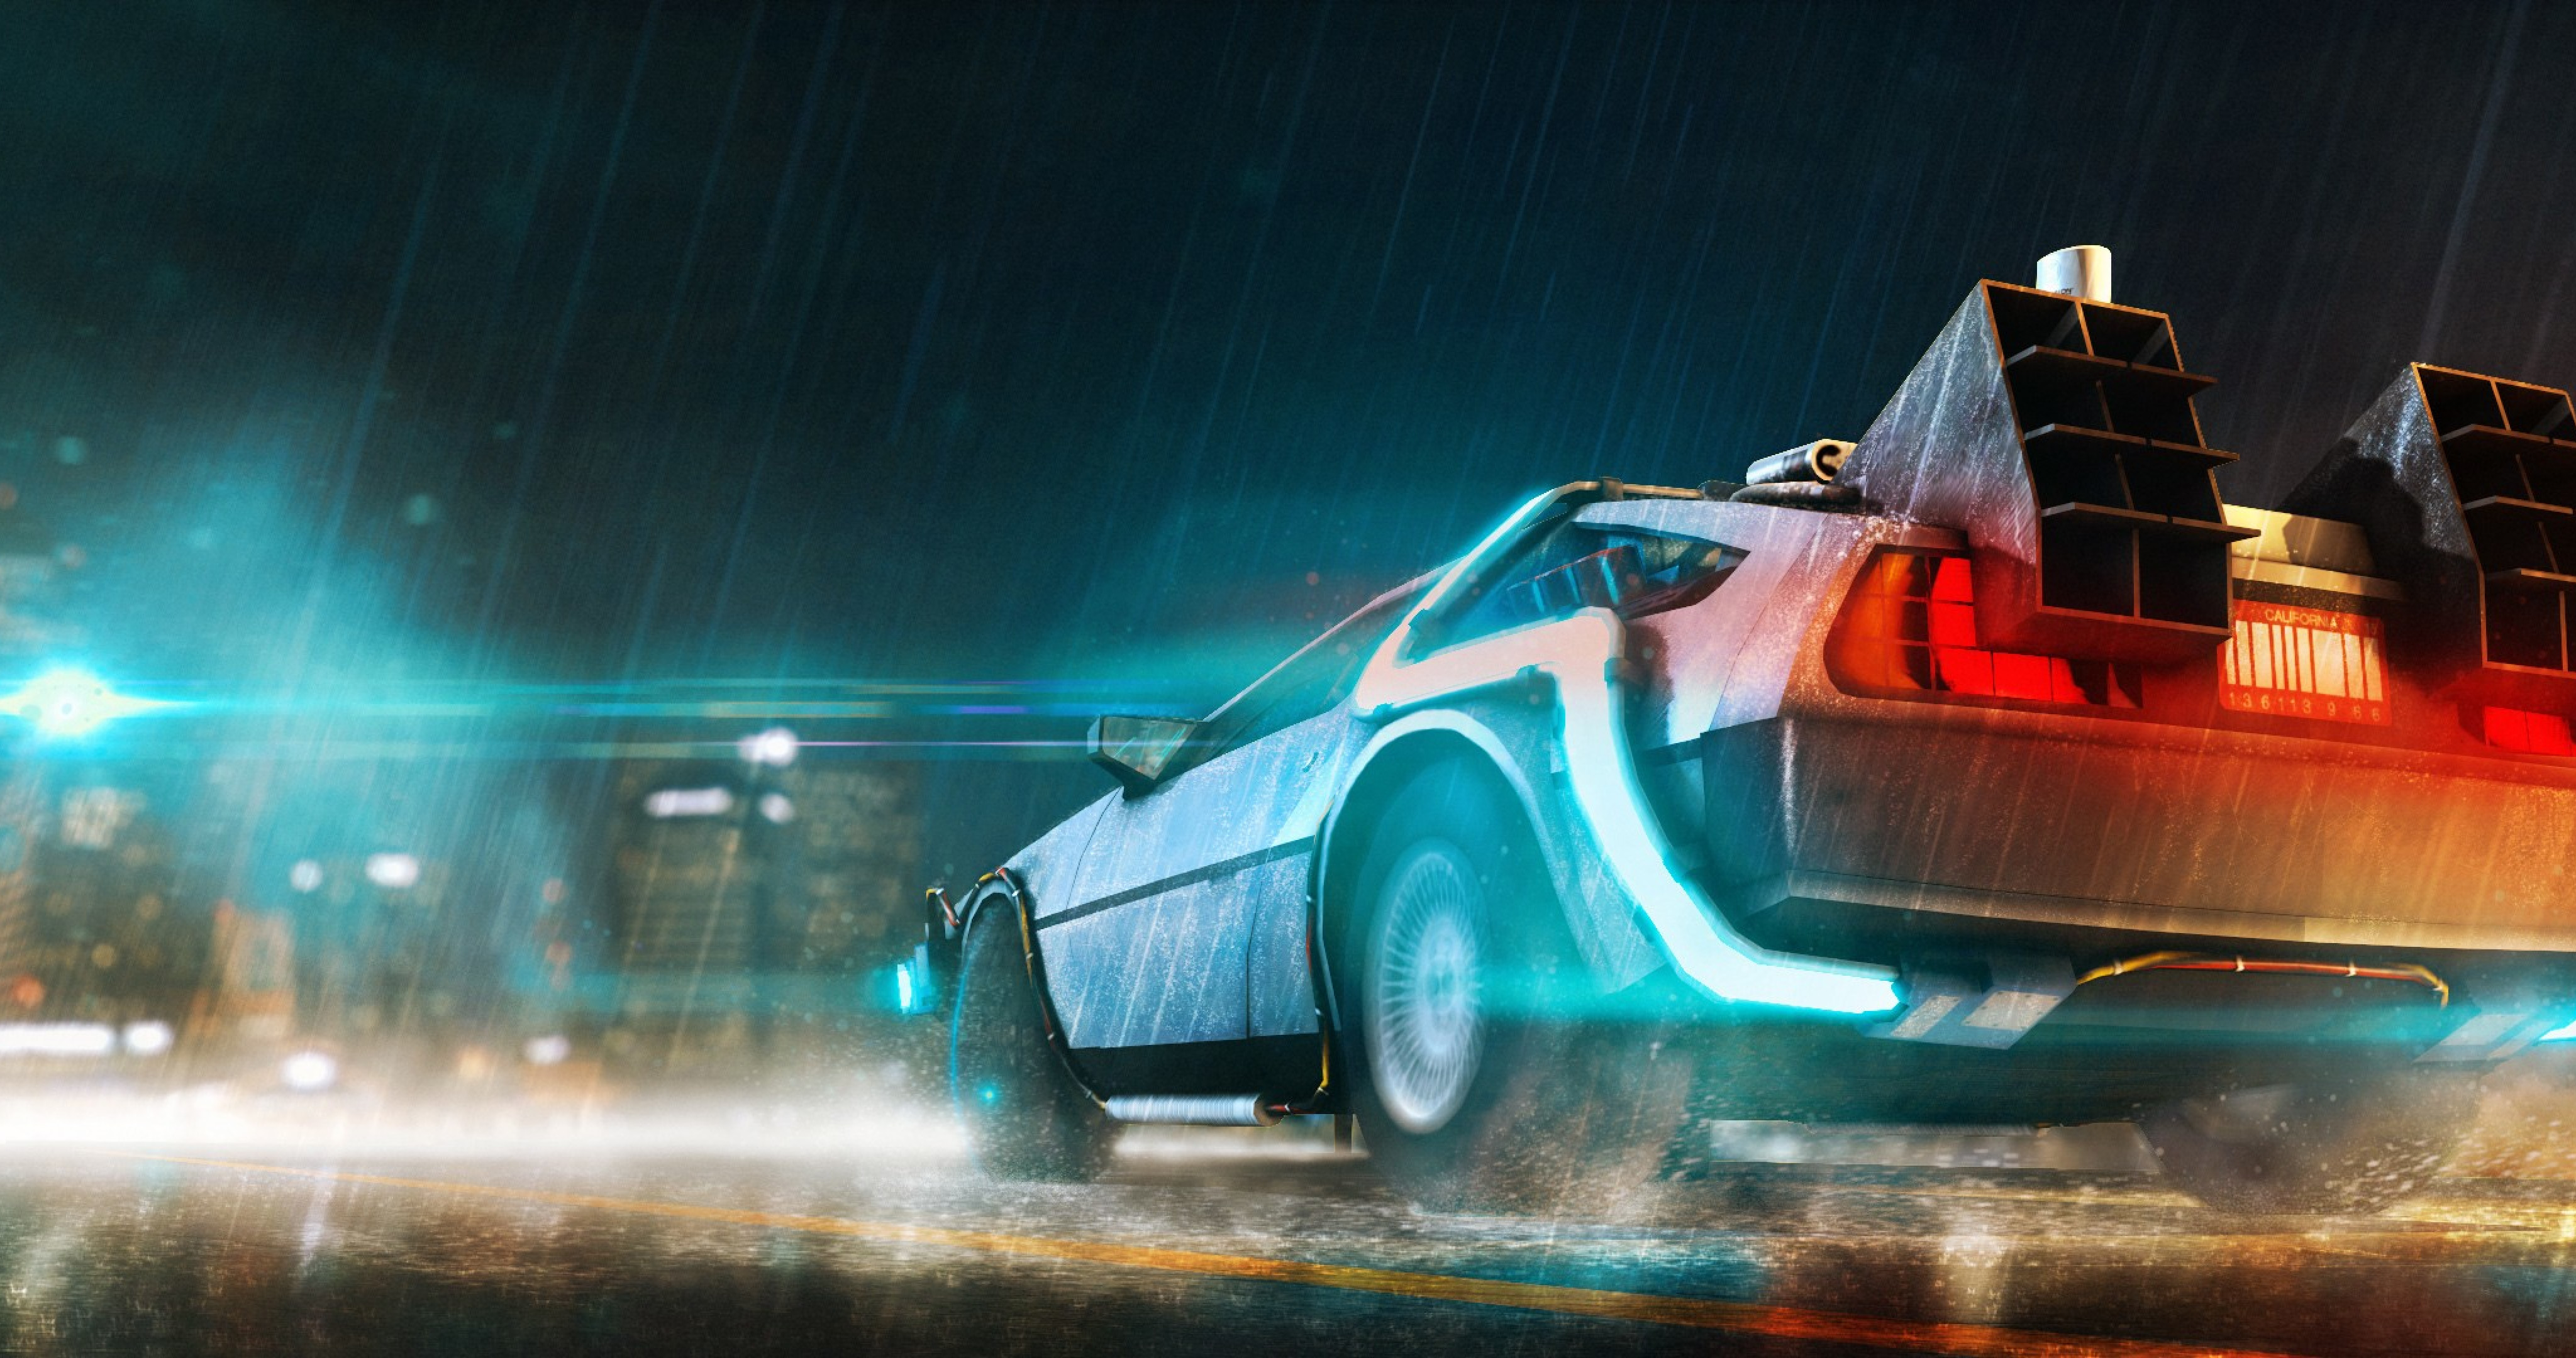 Back to the future car hd movies 4k wallpapers images - Future cars hd wallpapers ...